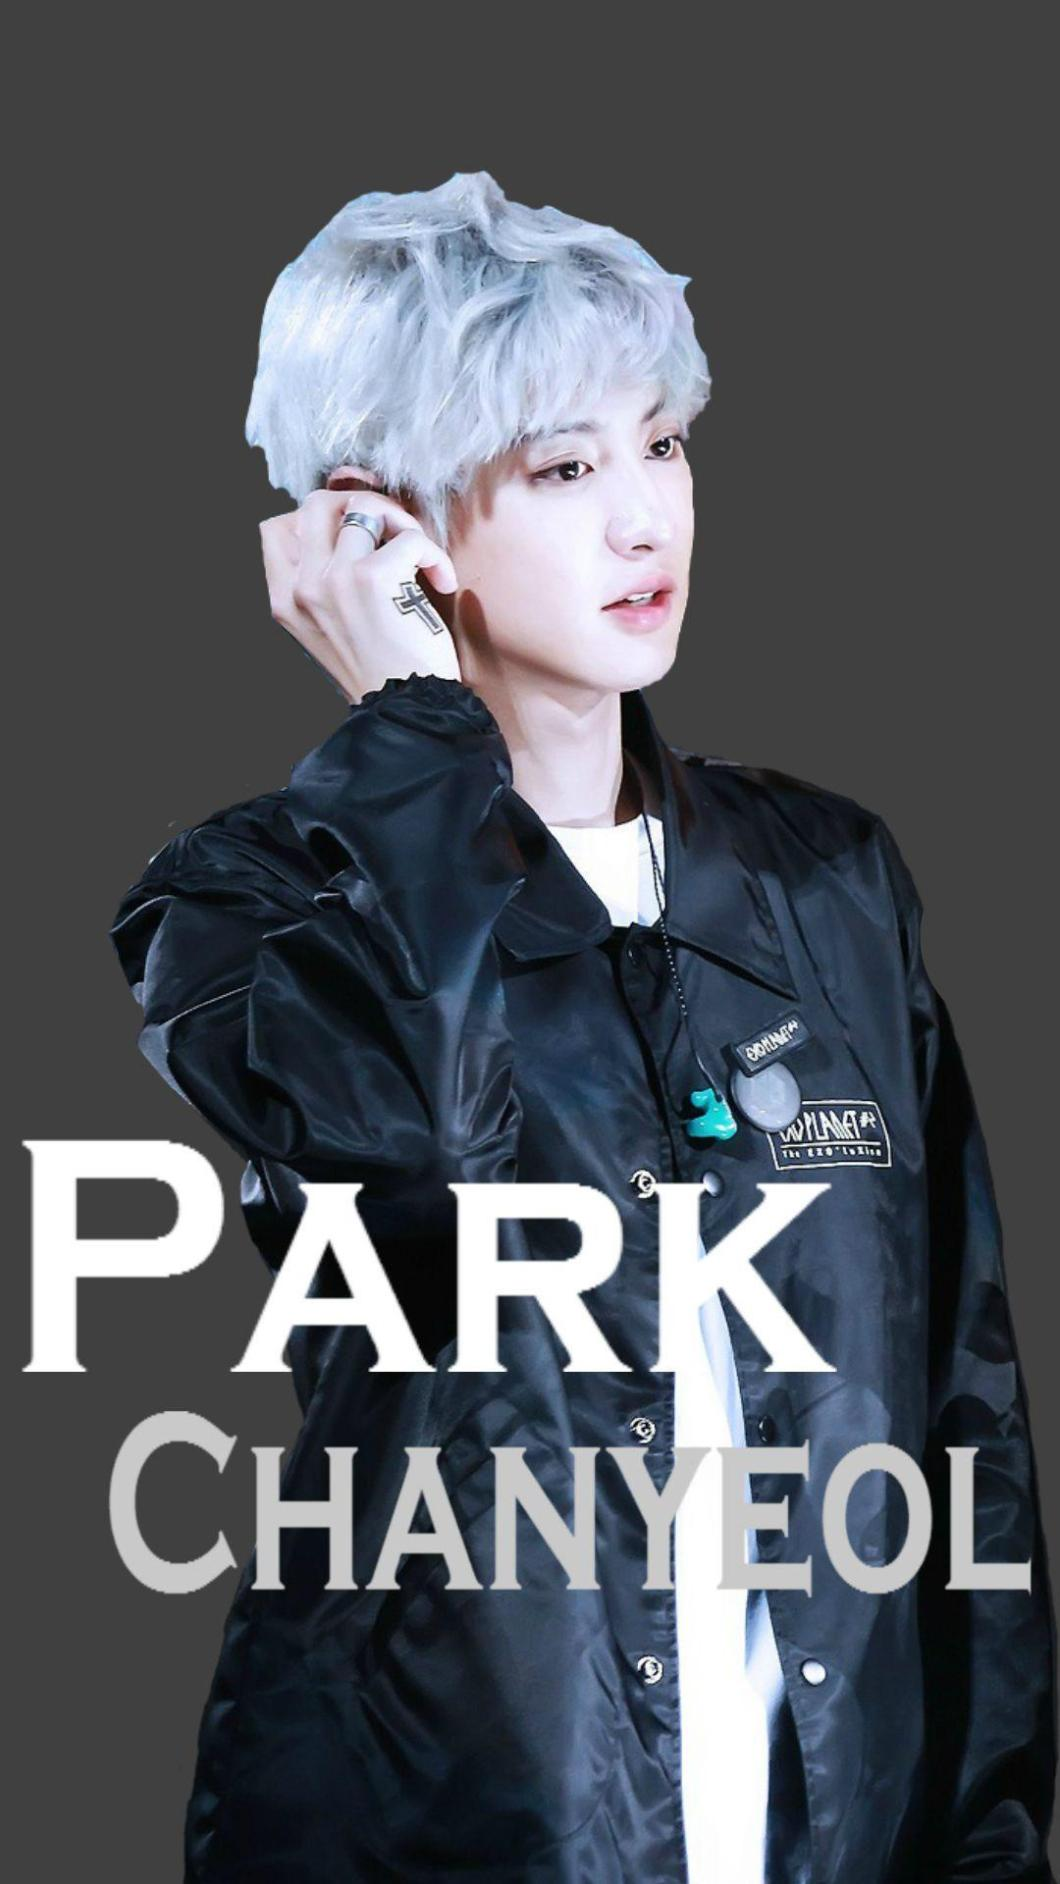 17 Park Chanyeol Wallpaper For Iphone Android And Desktop Page 3